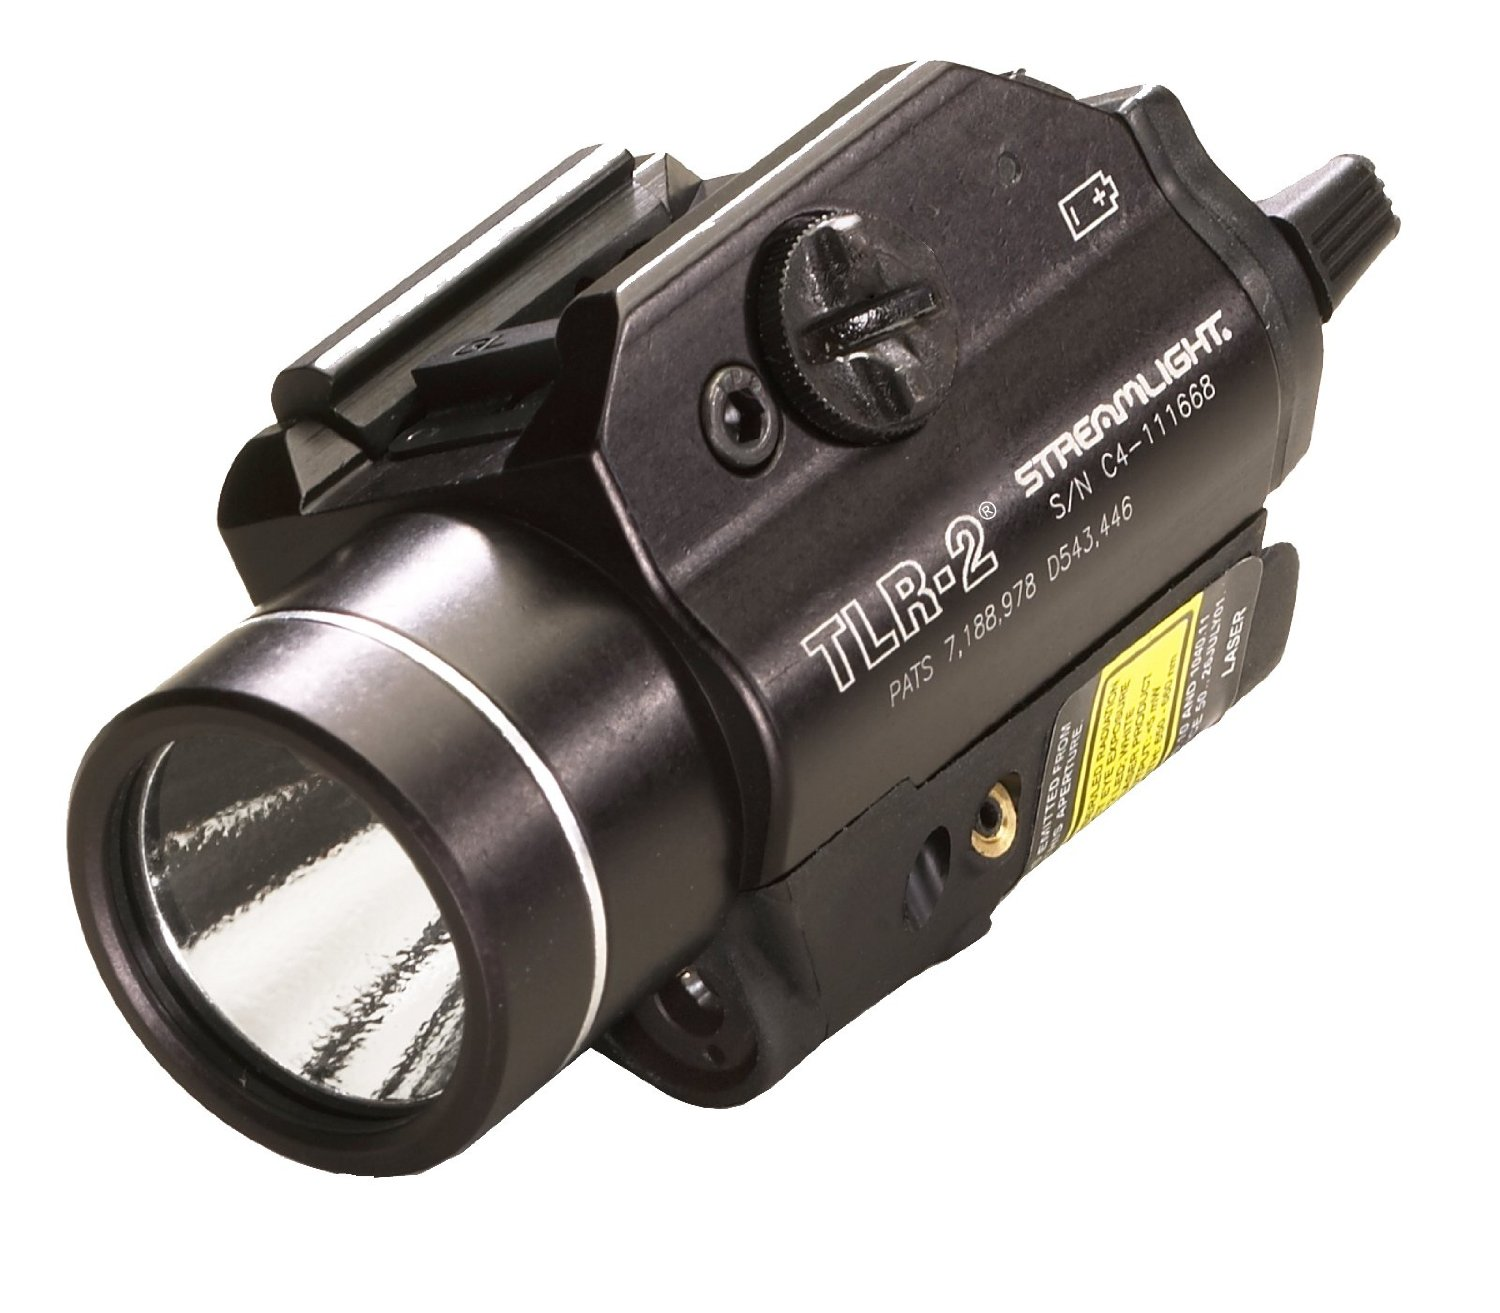 Streamlight 69120 TLR-2 C4 LED with Laser